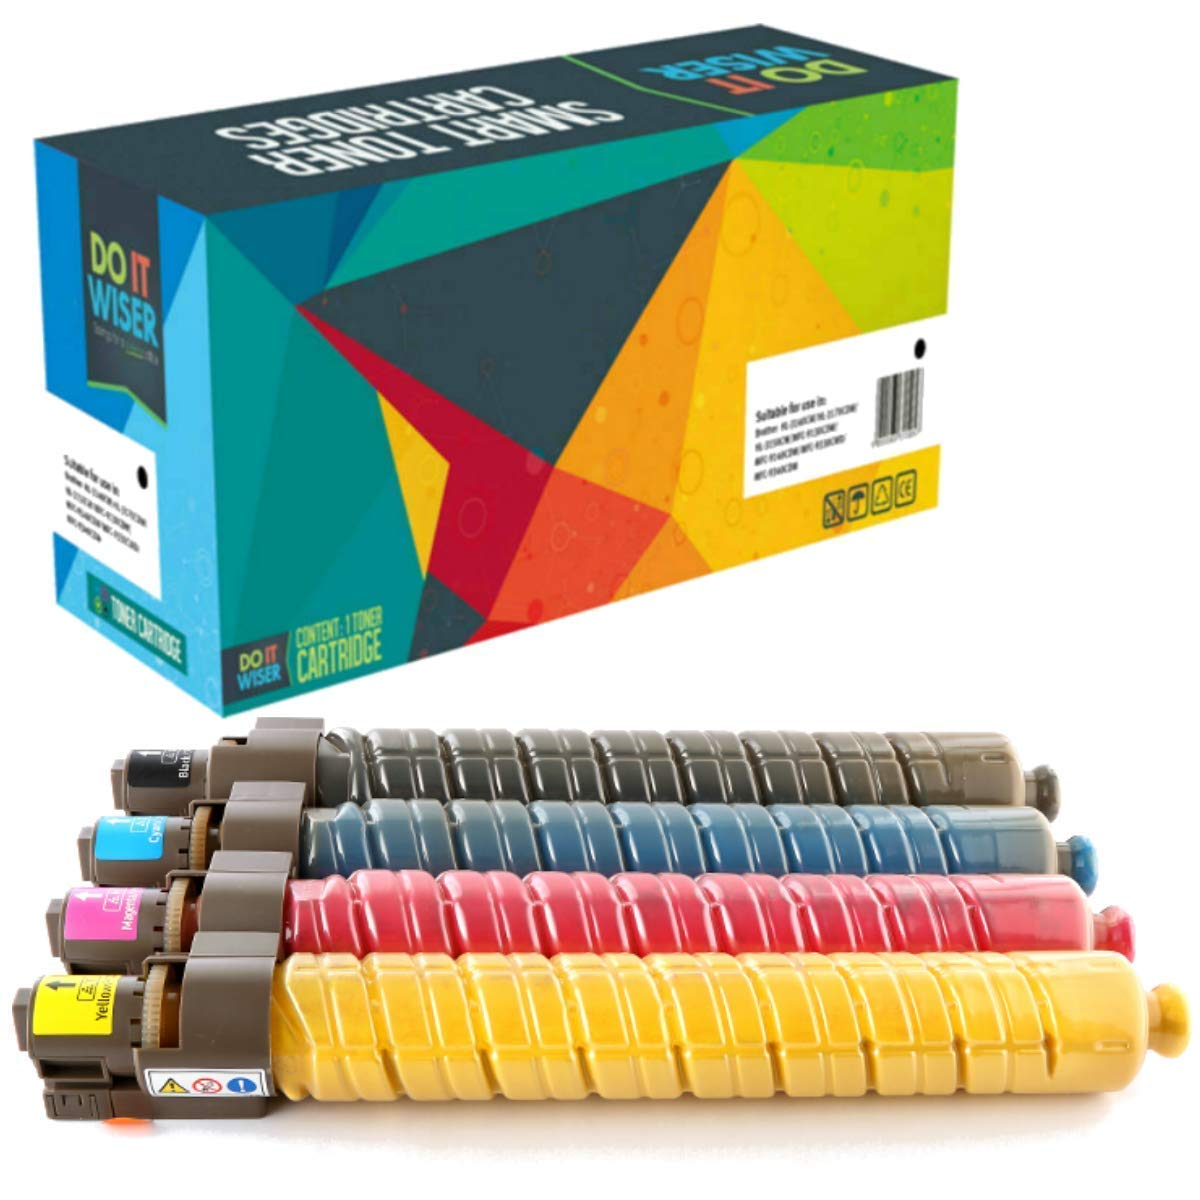 841281 Compatible Replacement for Ricoh 841280 841282 841283 Four Pack of Color Toner Cartridges.